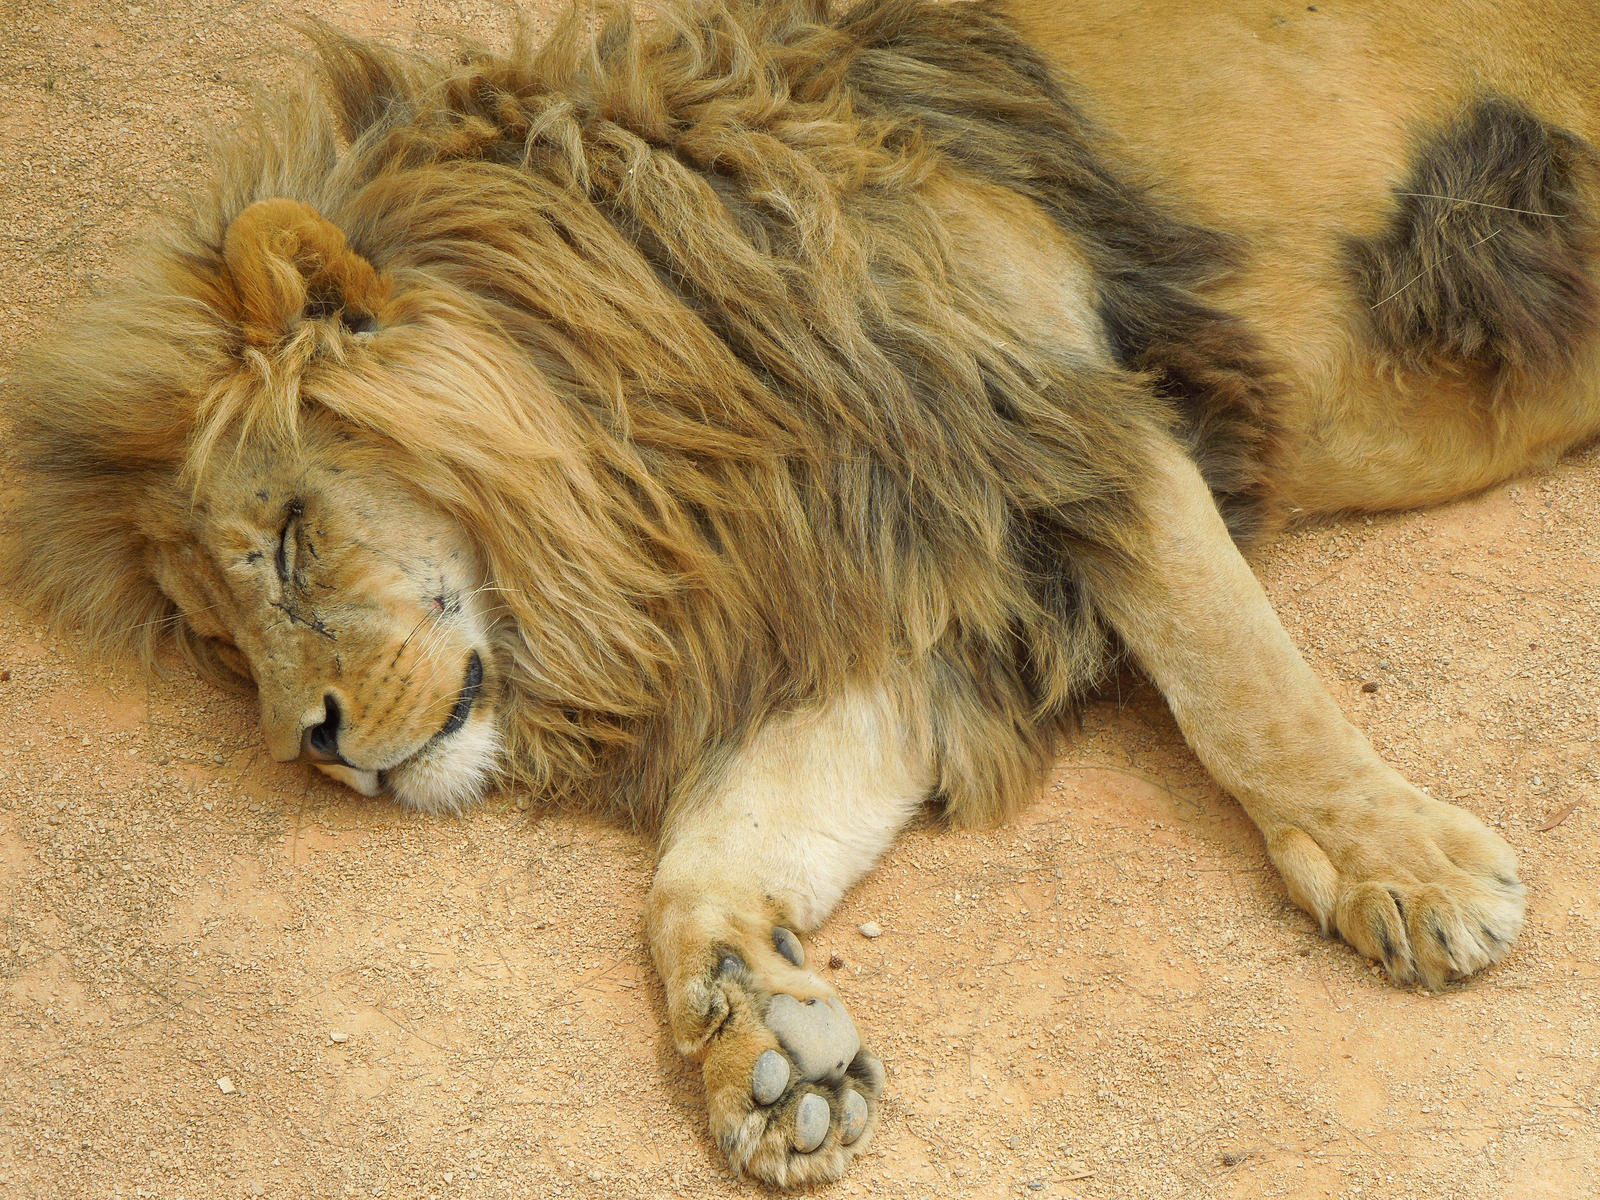 Sleeping lion by Bushrch on DeviantArt